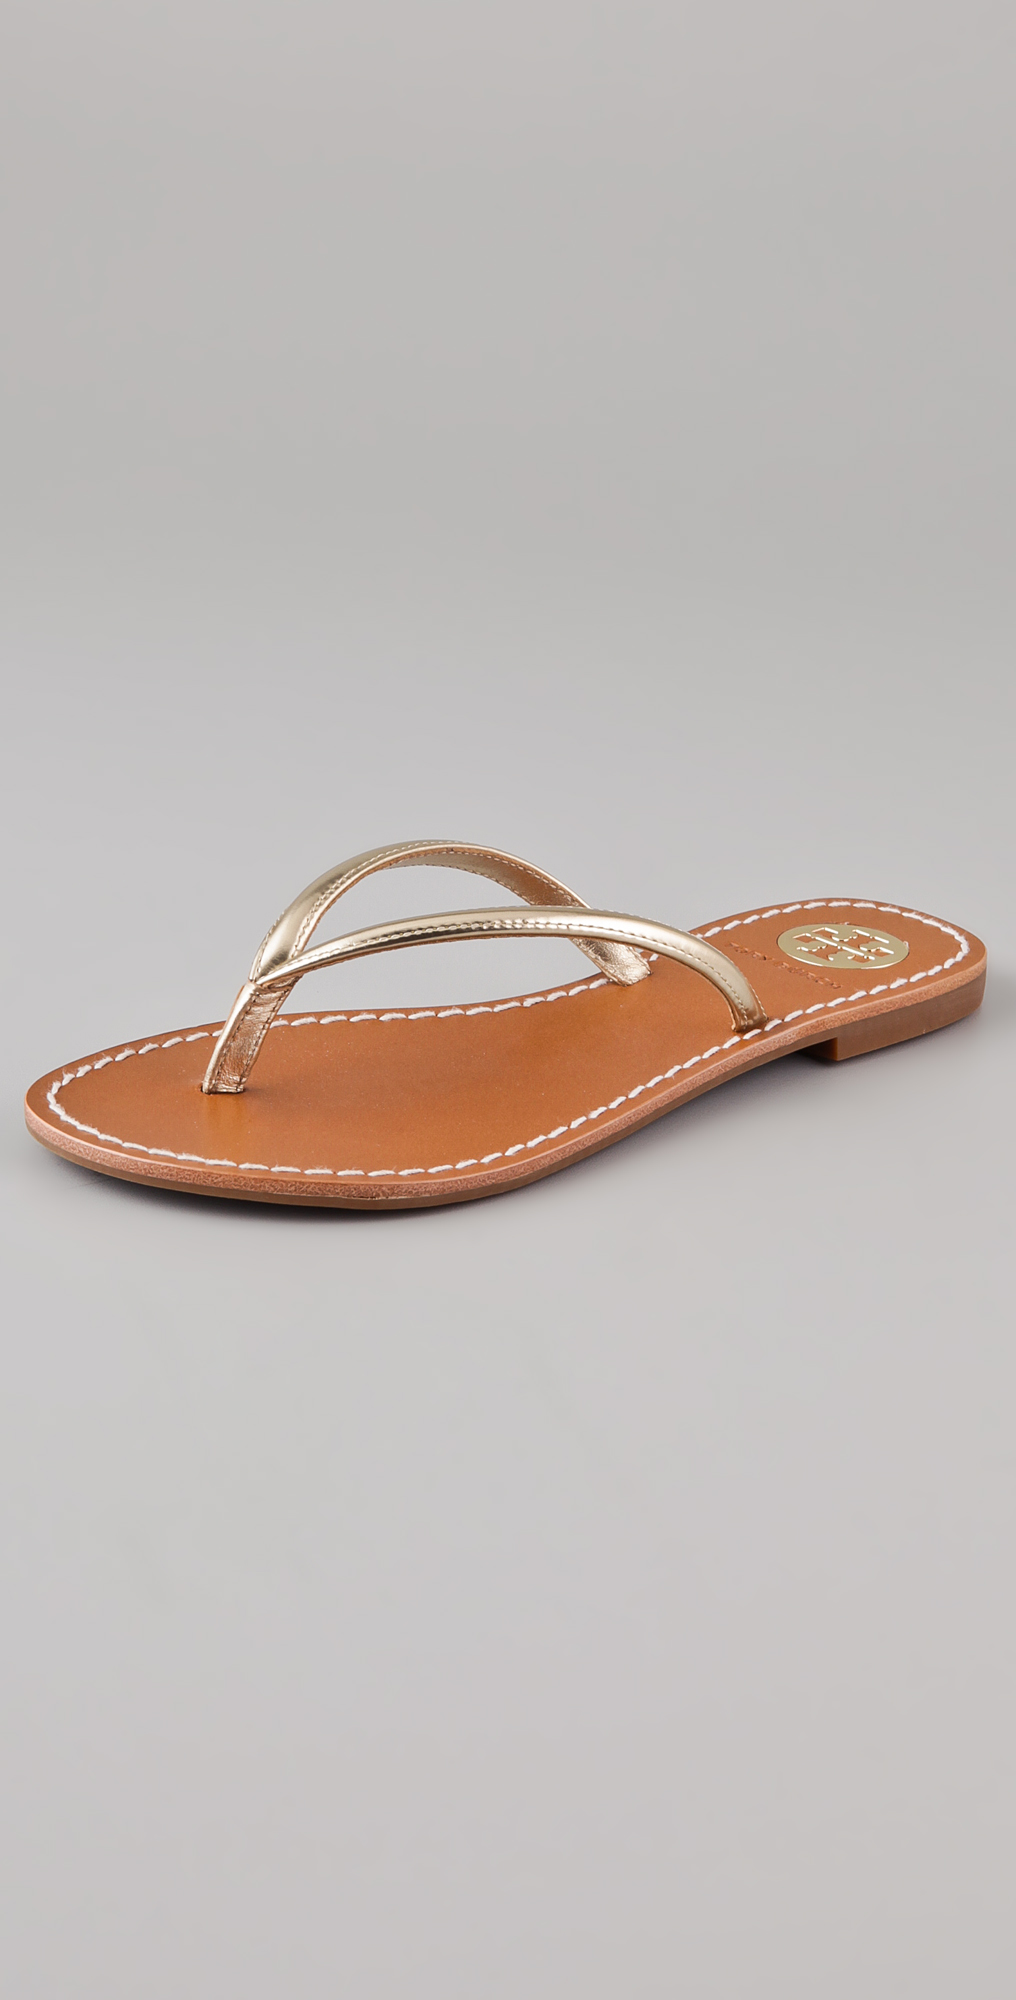 Lyst - Tory Burch Abitha Flip Flops In Metallic-8274